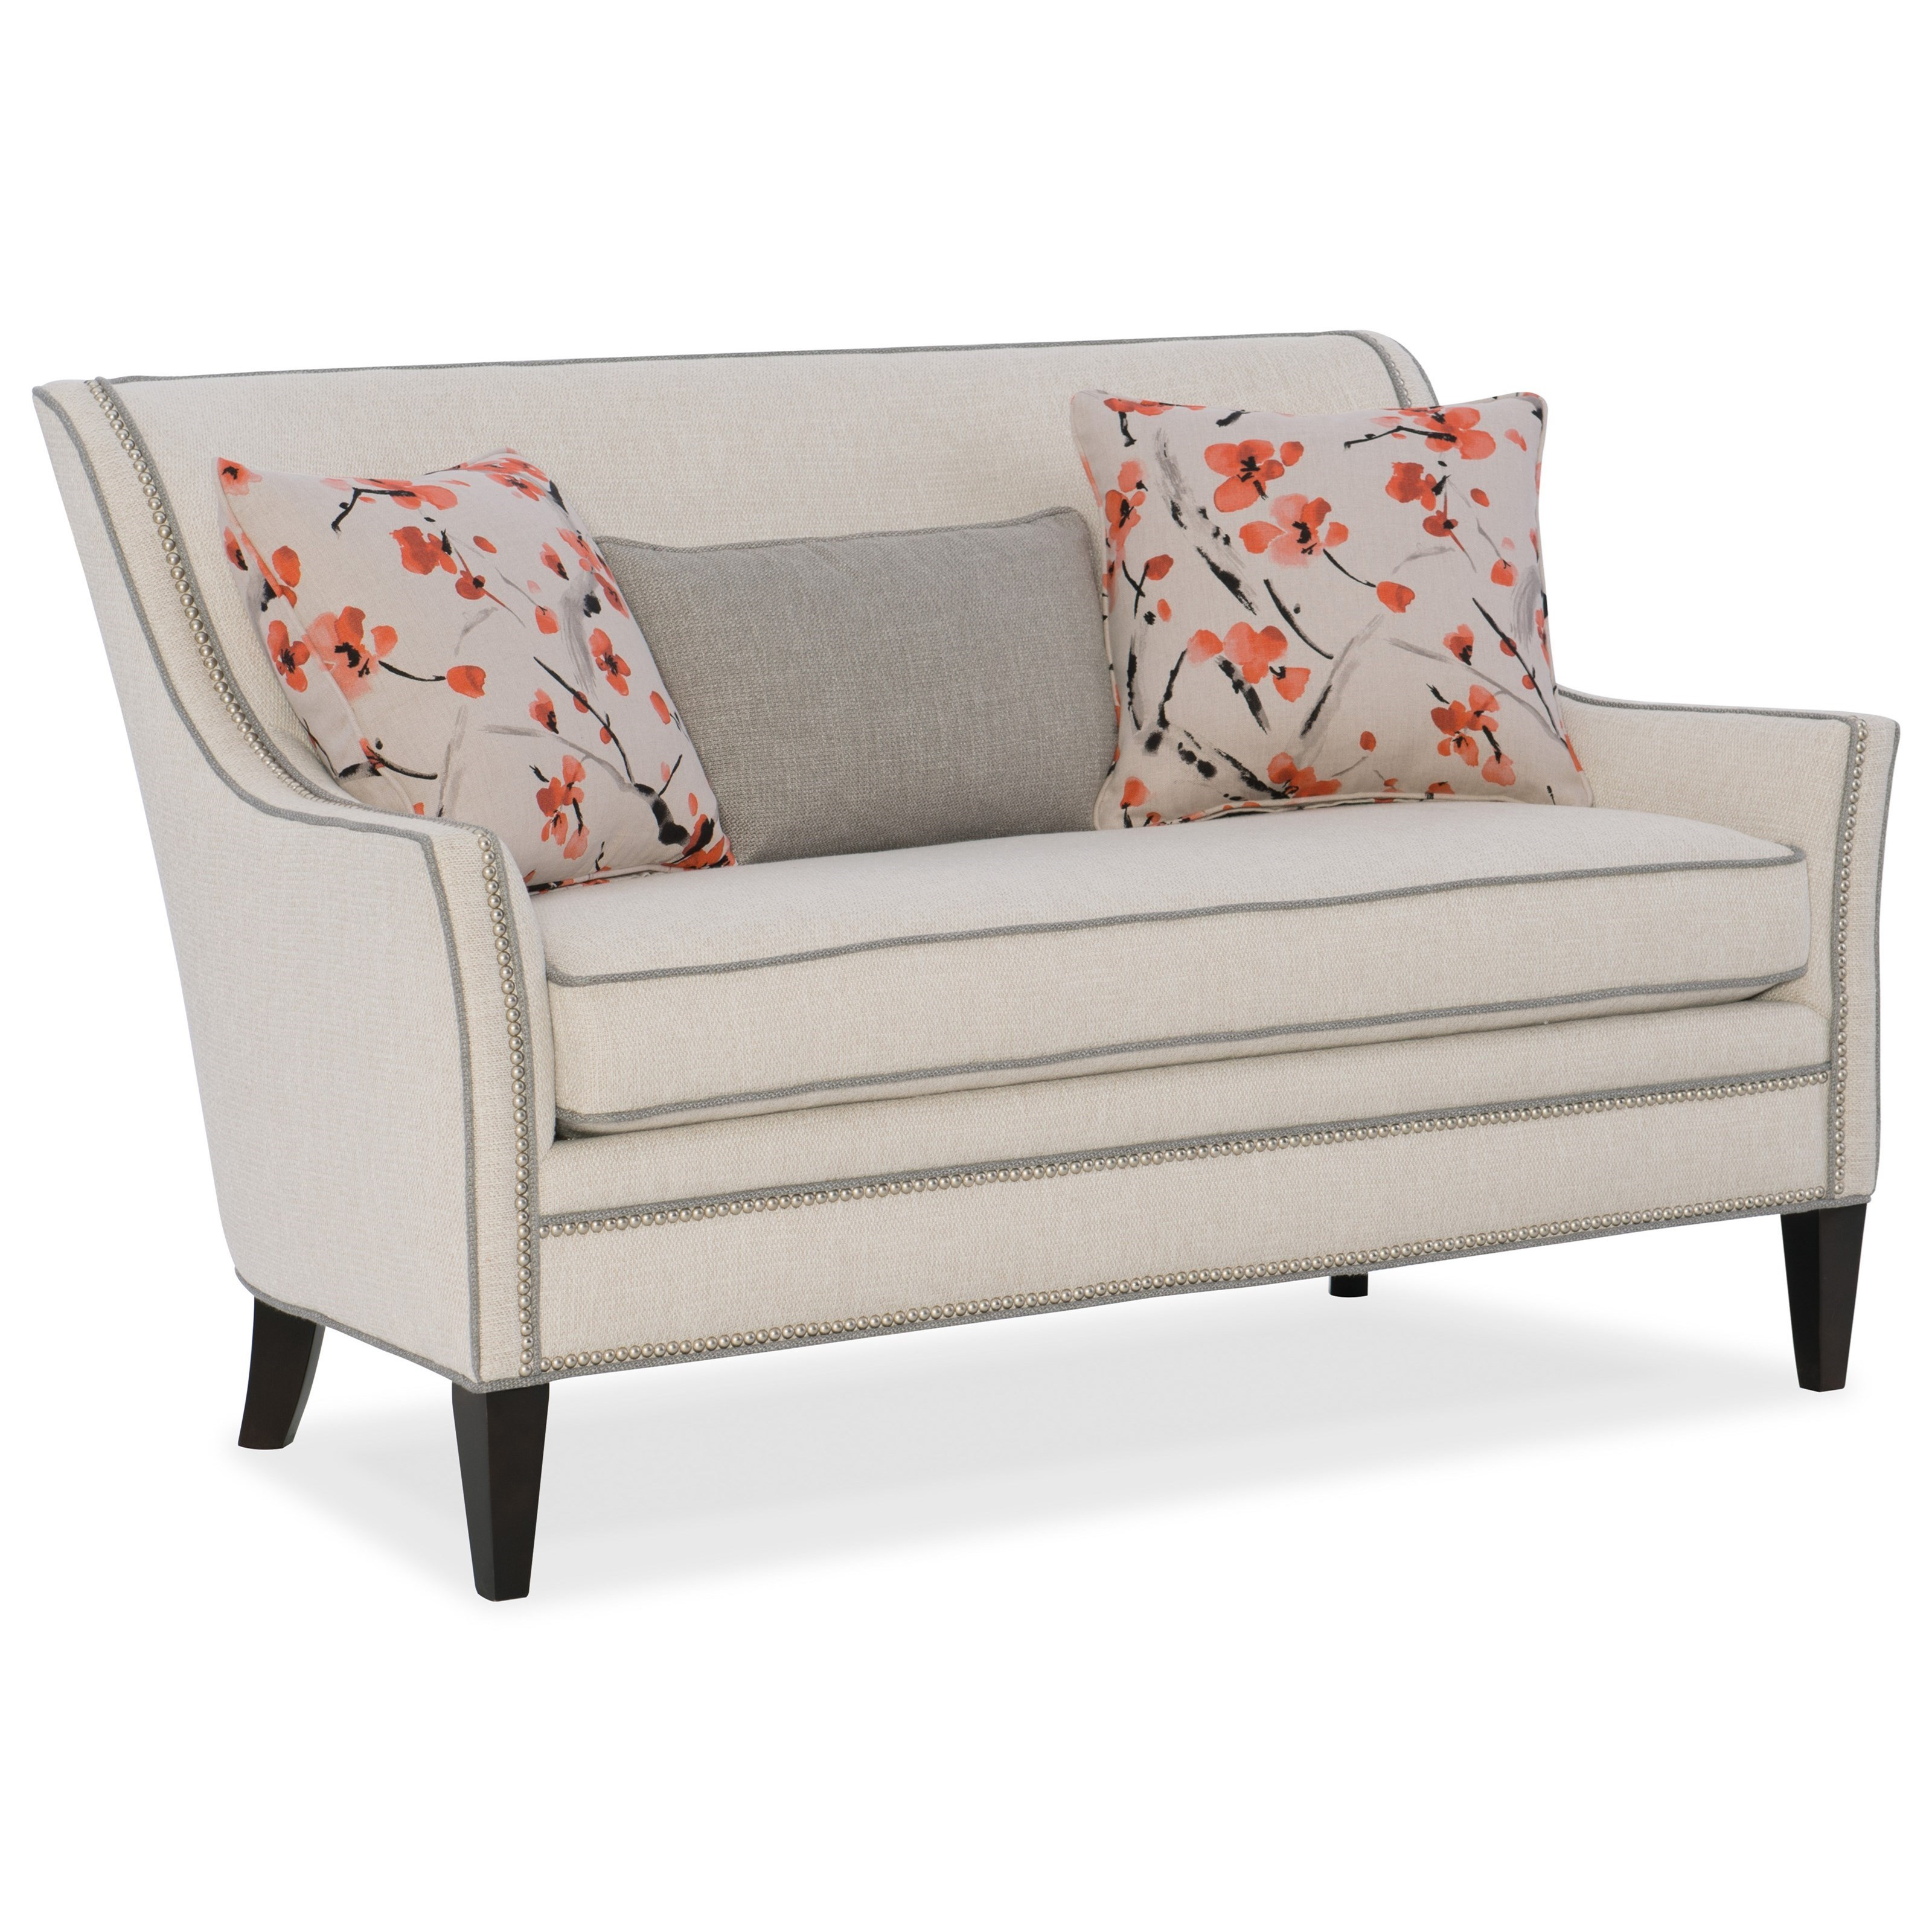 Everly Wing Back Settee With Nailhead Border By Sam Moore